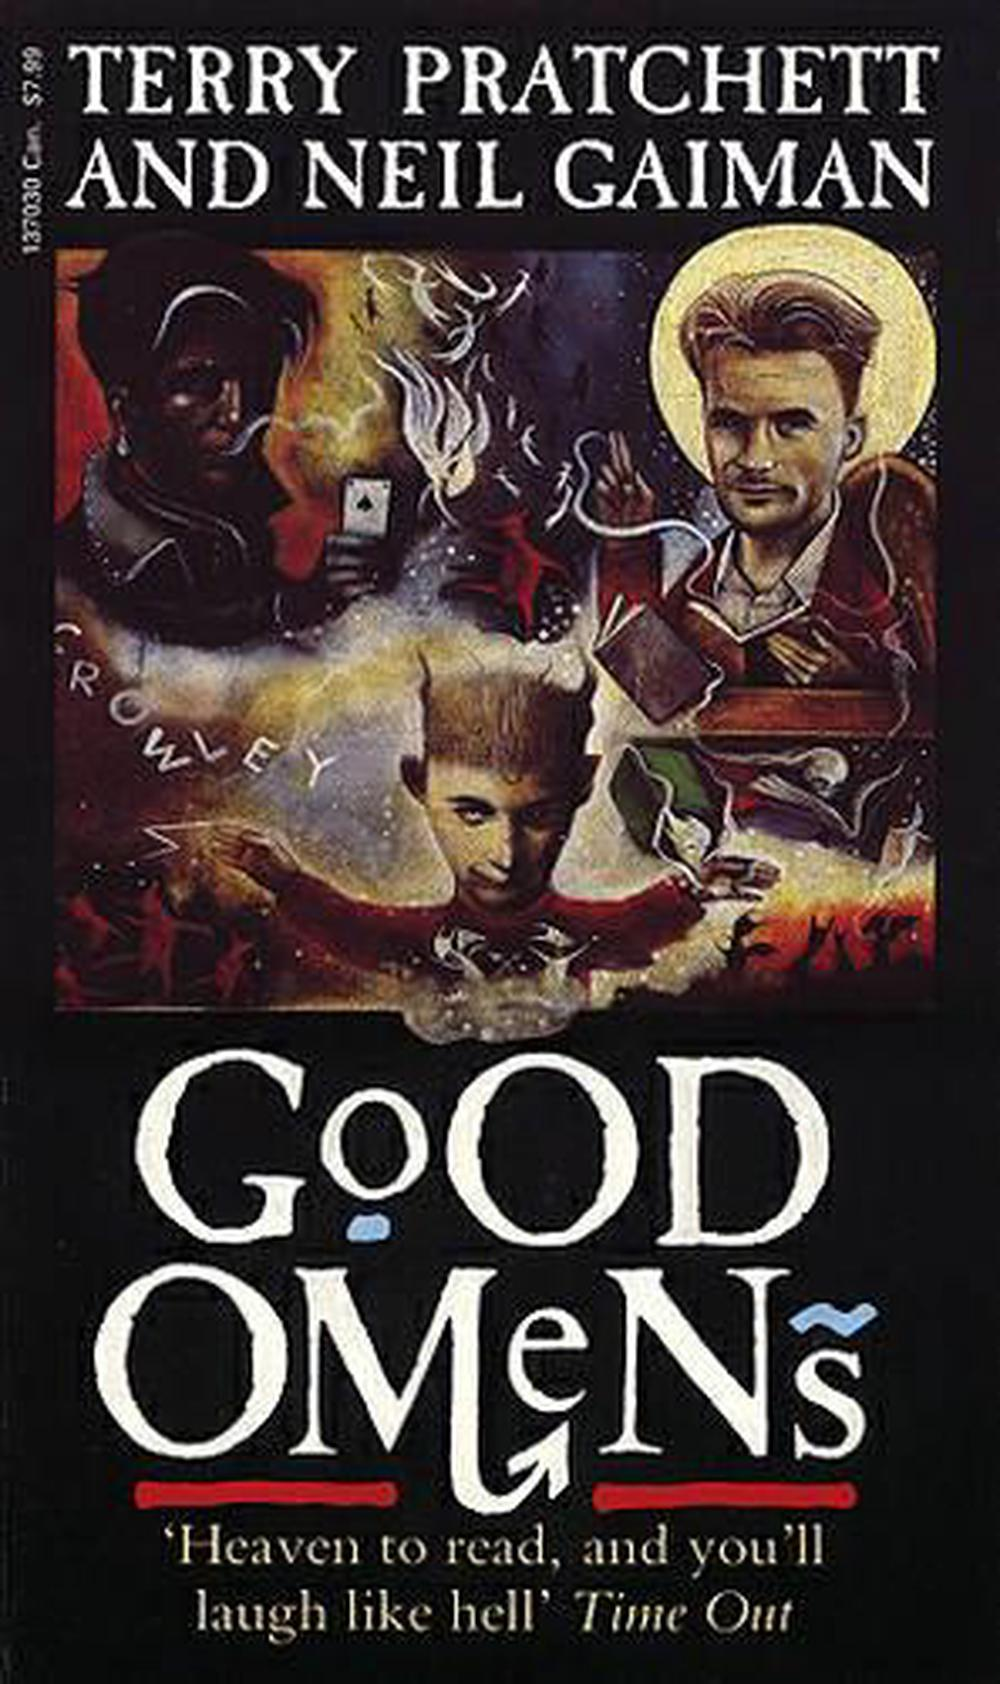 Good Omens by Neil Gaiman, Paperback, 9780552137034 | Buy online at